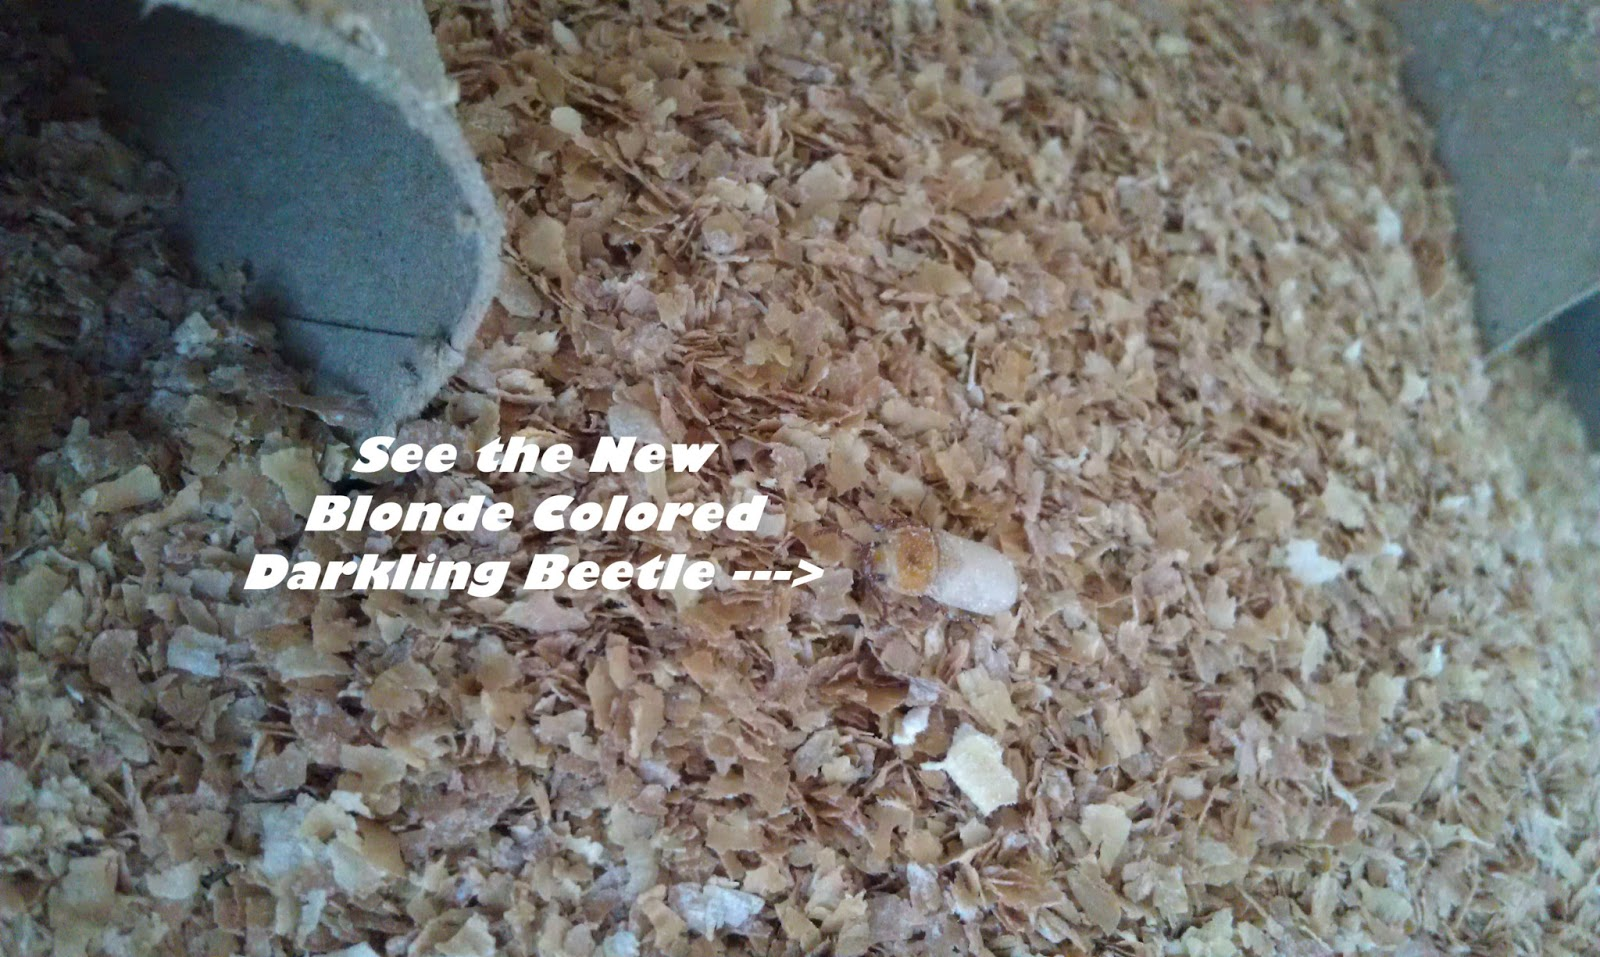 Backyard Chicken Lady thinking out loud: I'm Raising Mealworms ~ Gross, Yet So Fascinating!